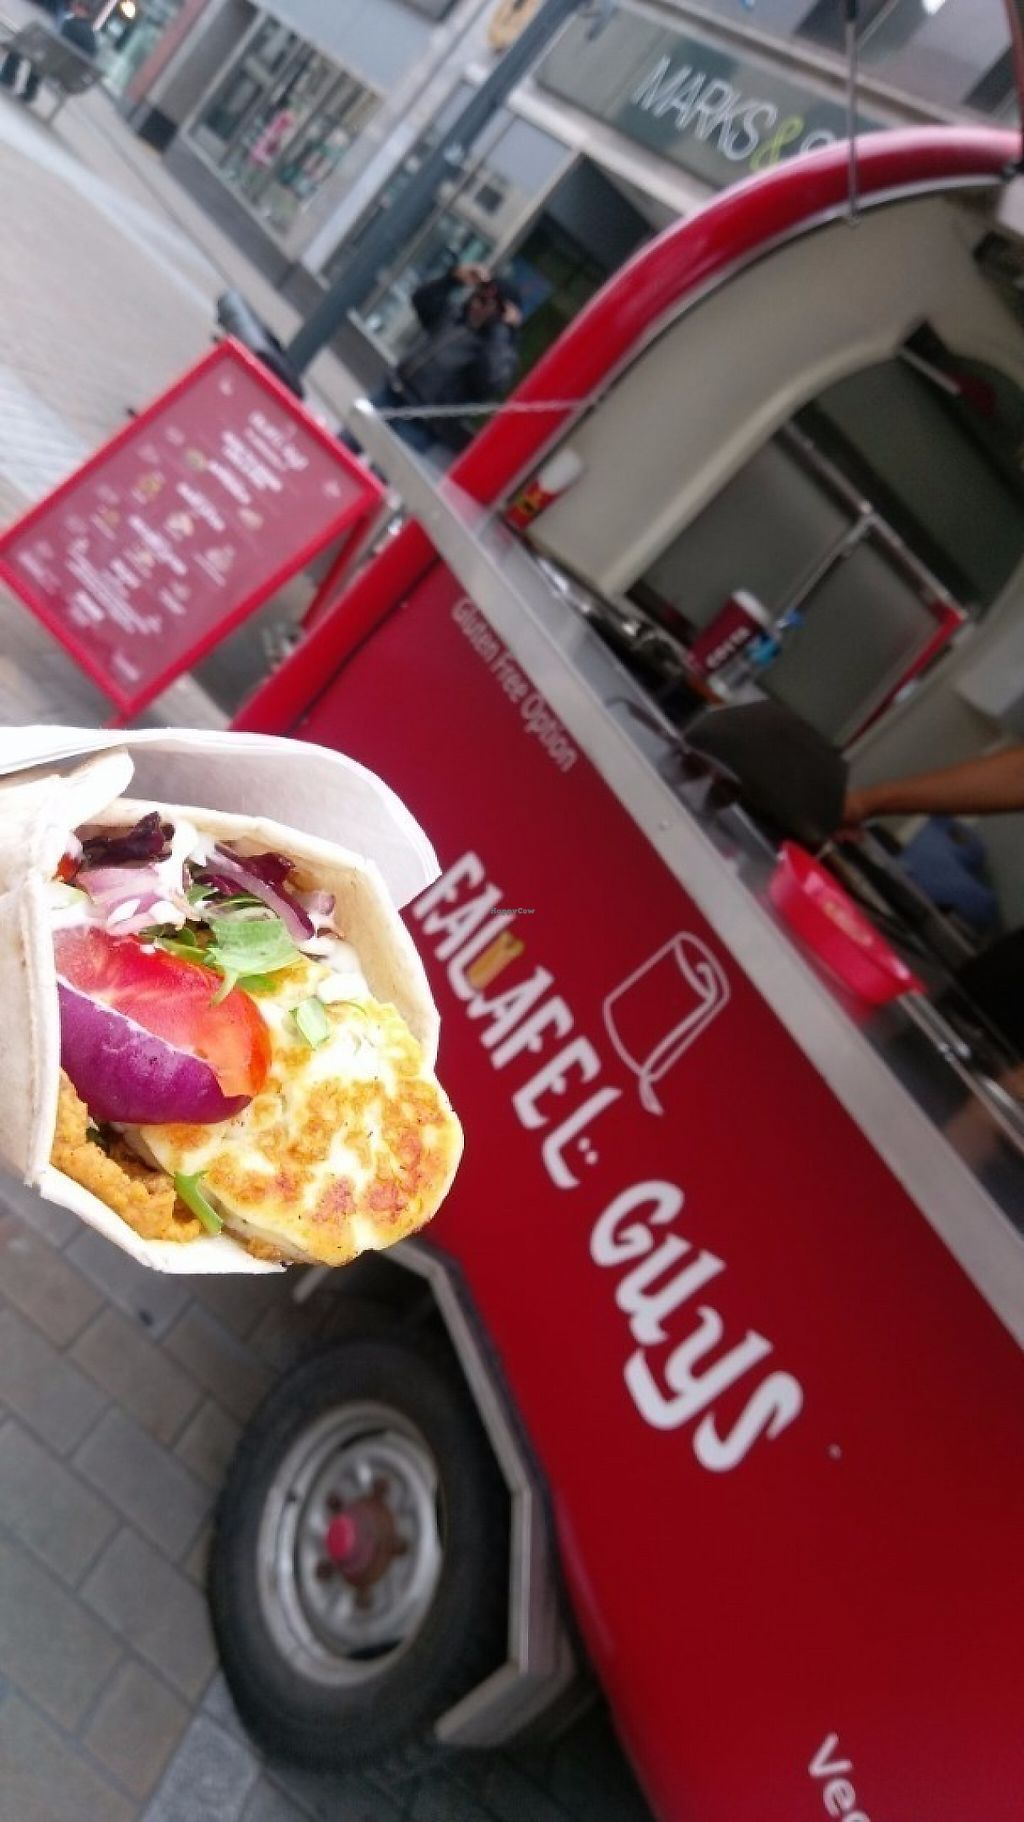 "Photo of Falafel Guys - Food Truck  by <a href=""/members/profile/RR999"">RR999</a> <br/>Halloumi wrap! <br/> May 30, 2017  - <a href='/contact/abuse/image/92914/264185'>Report</a>"